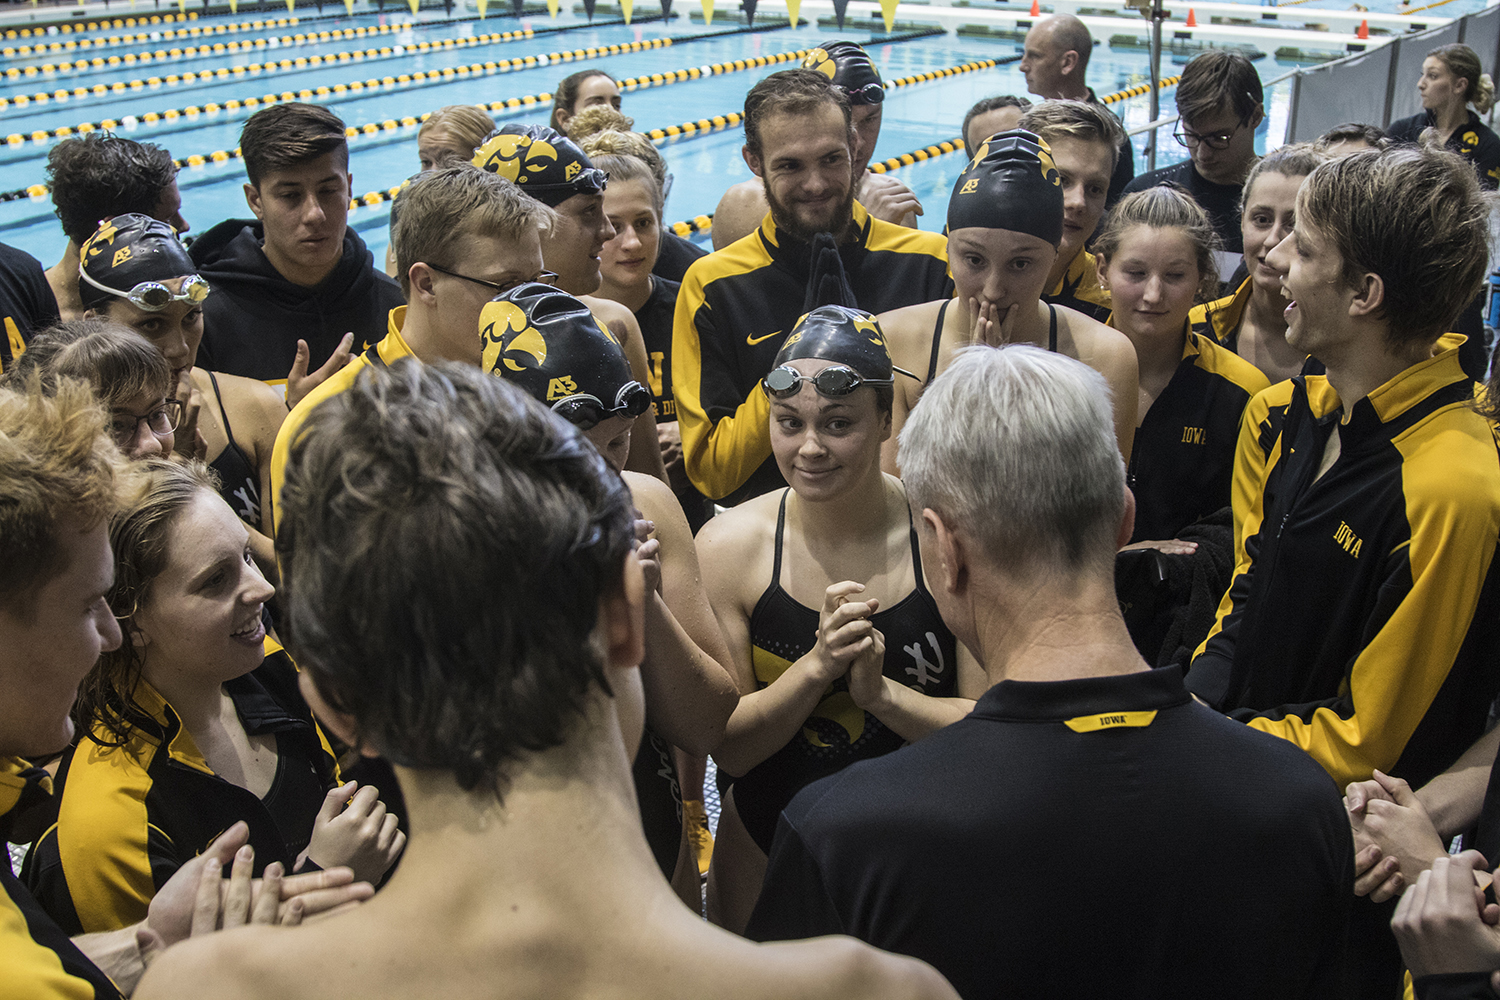 The Iowa swim team huddles during a swim meet where Iowa hosted the University of Denver and University of Michigan at the Campus Recreation and Wellness Center on Saturday, November 3, 2018.